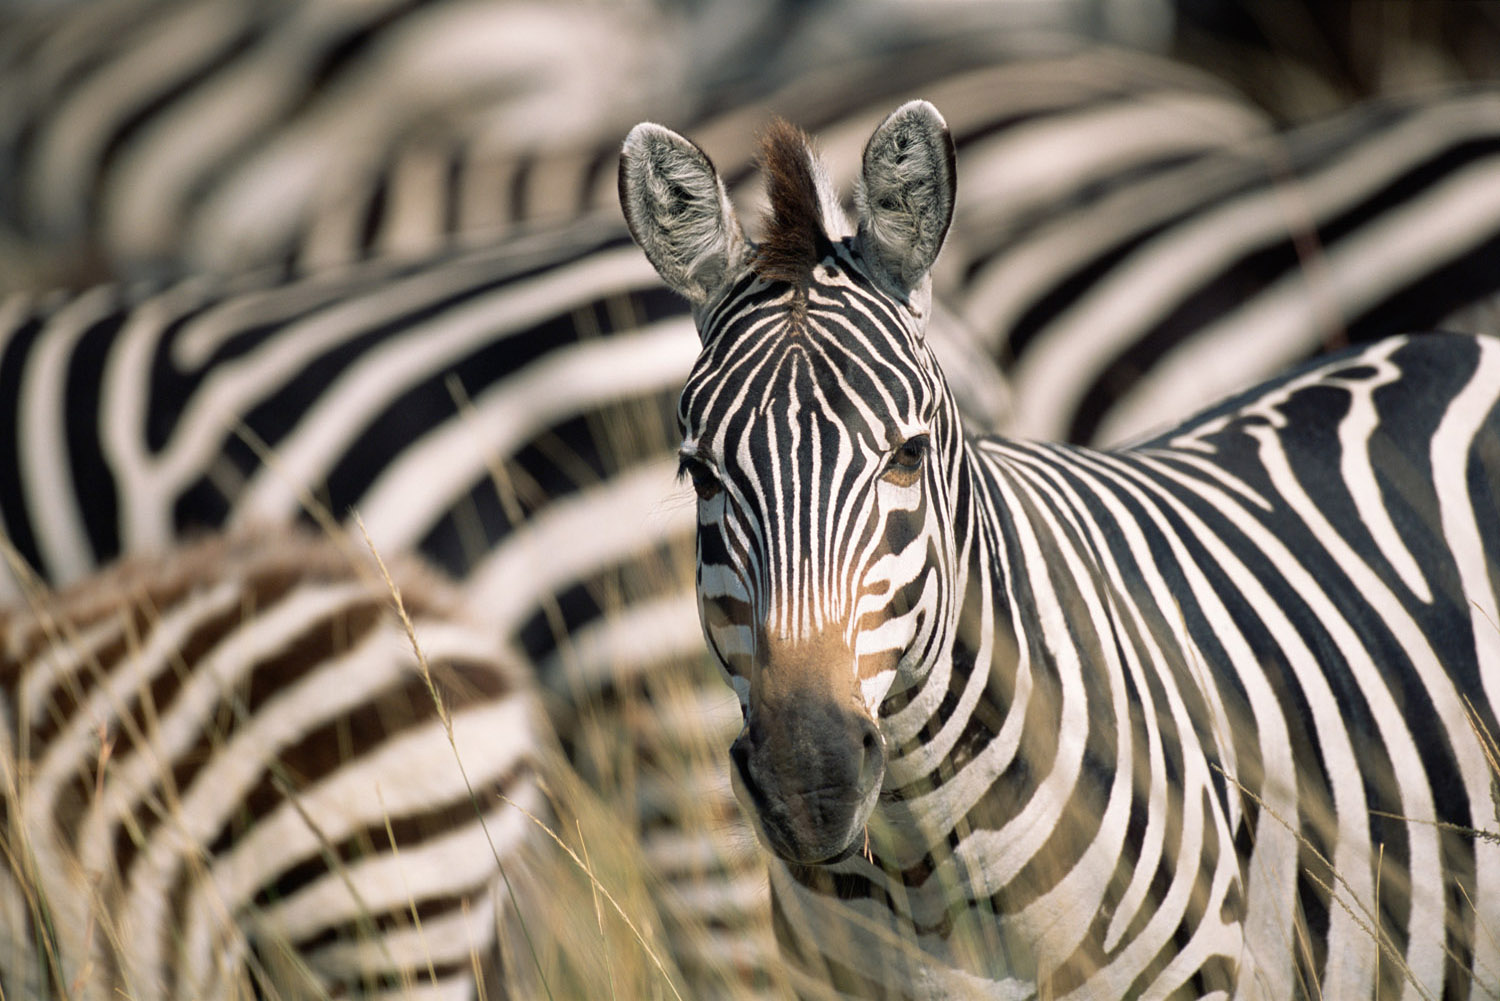 Common zebra portrait amongst herd, Masai Mara National Reserve, Kenya